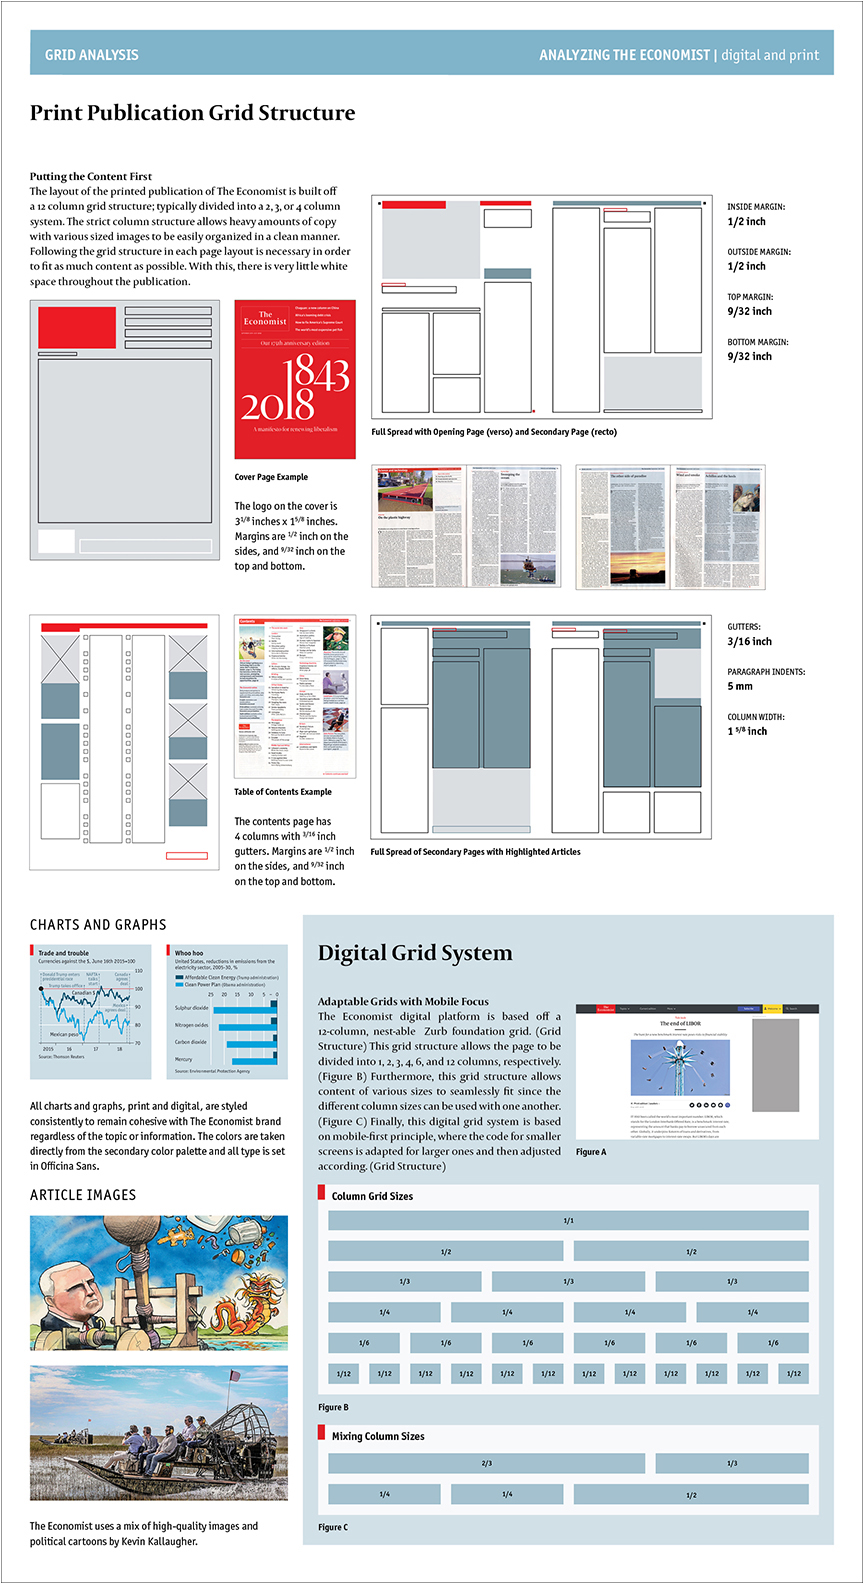 Broadsheet 3 - Print and Online Grid Study